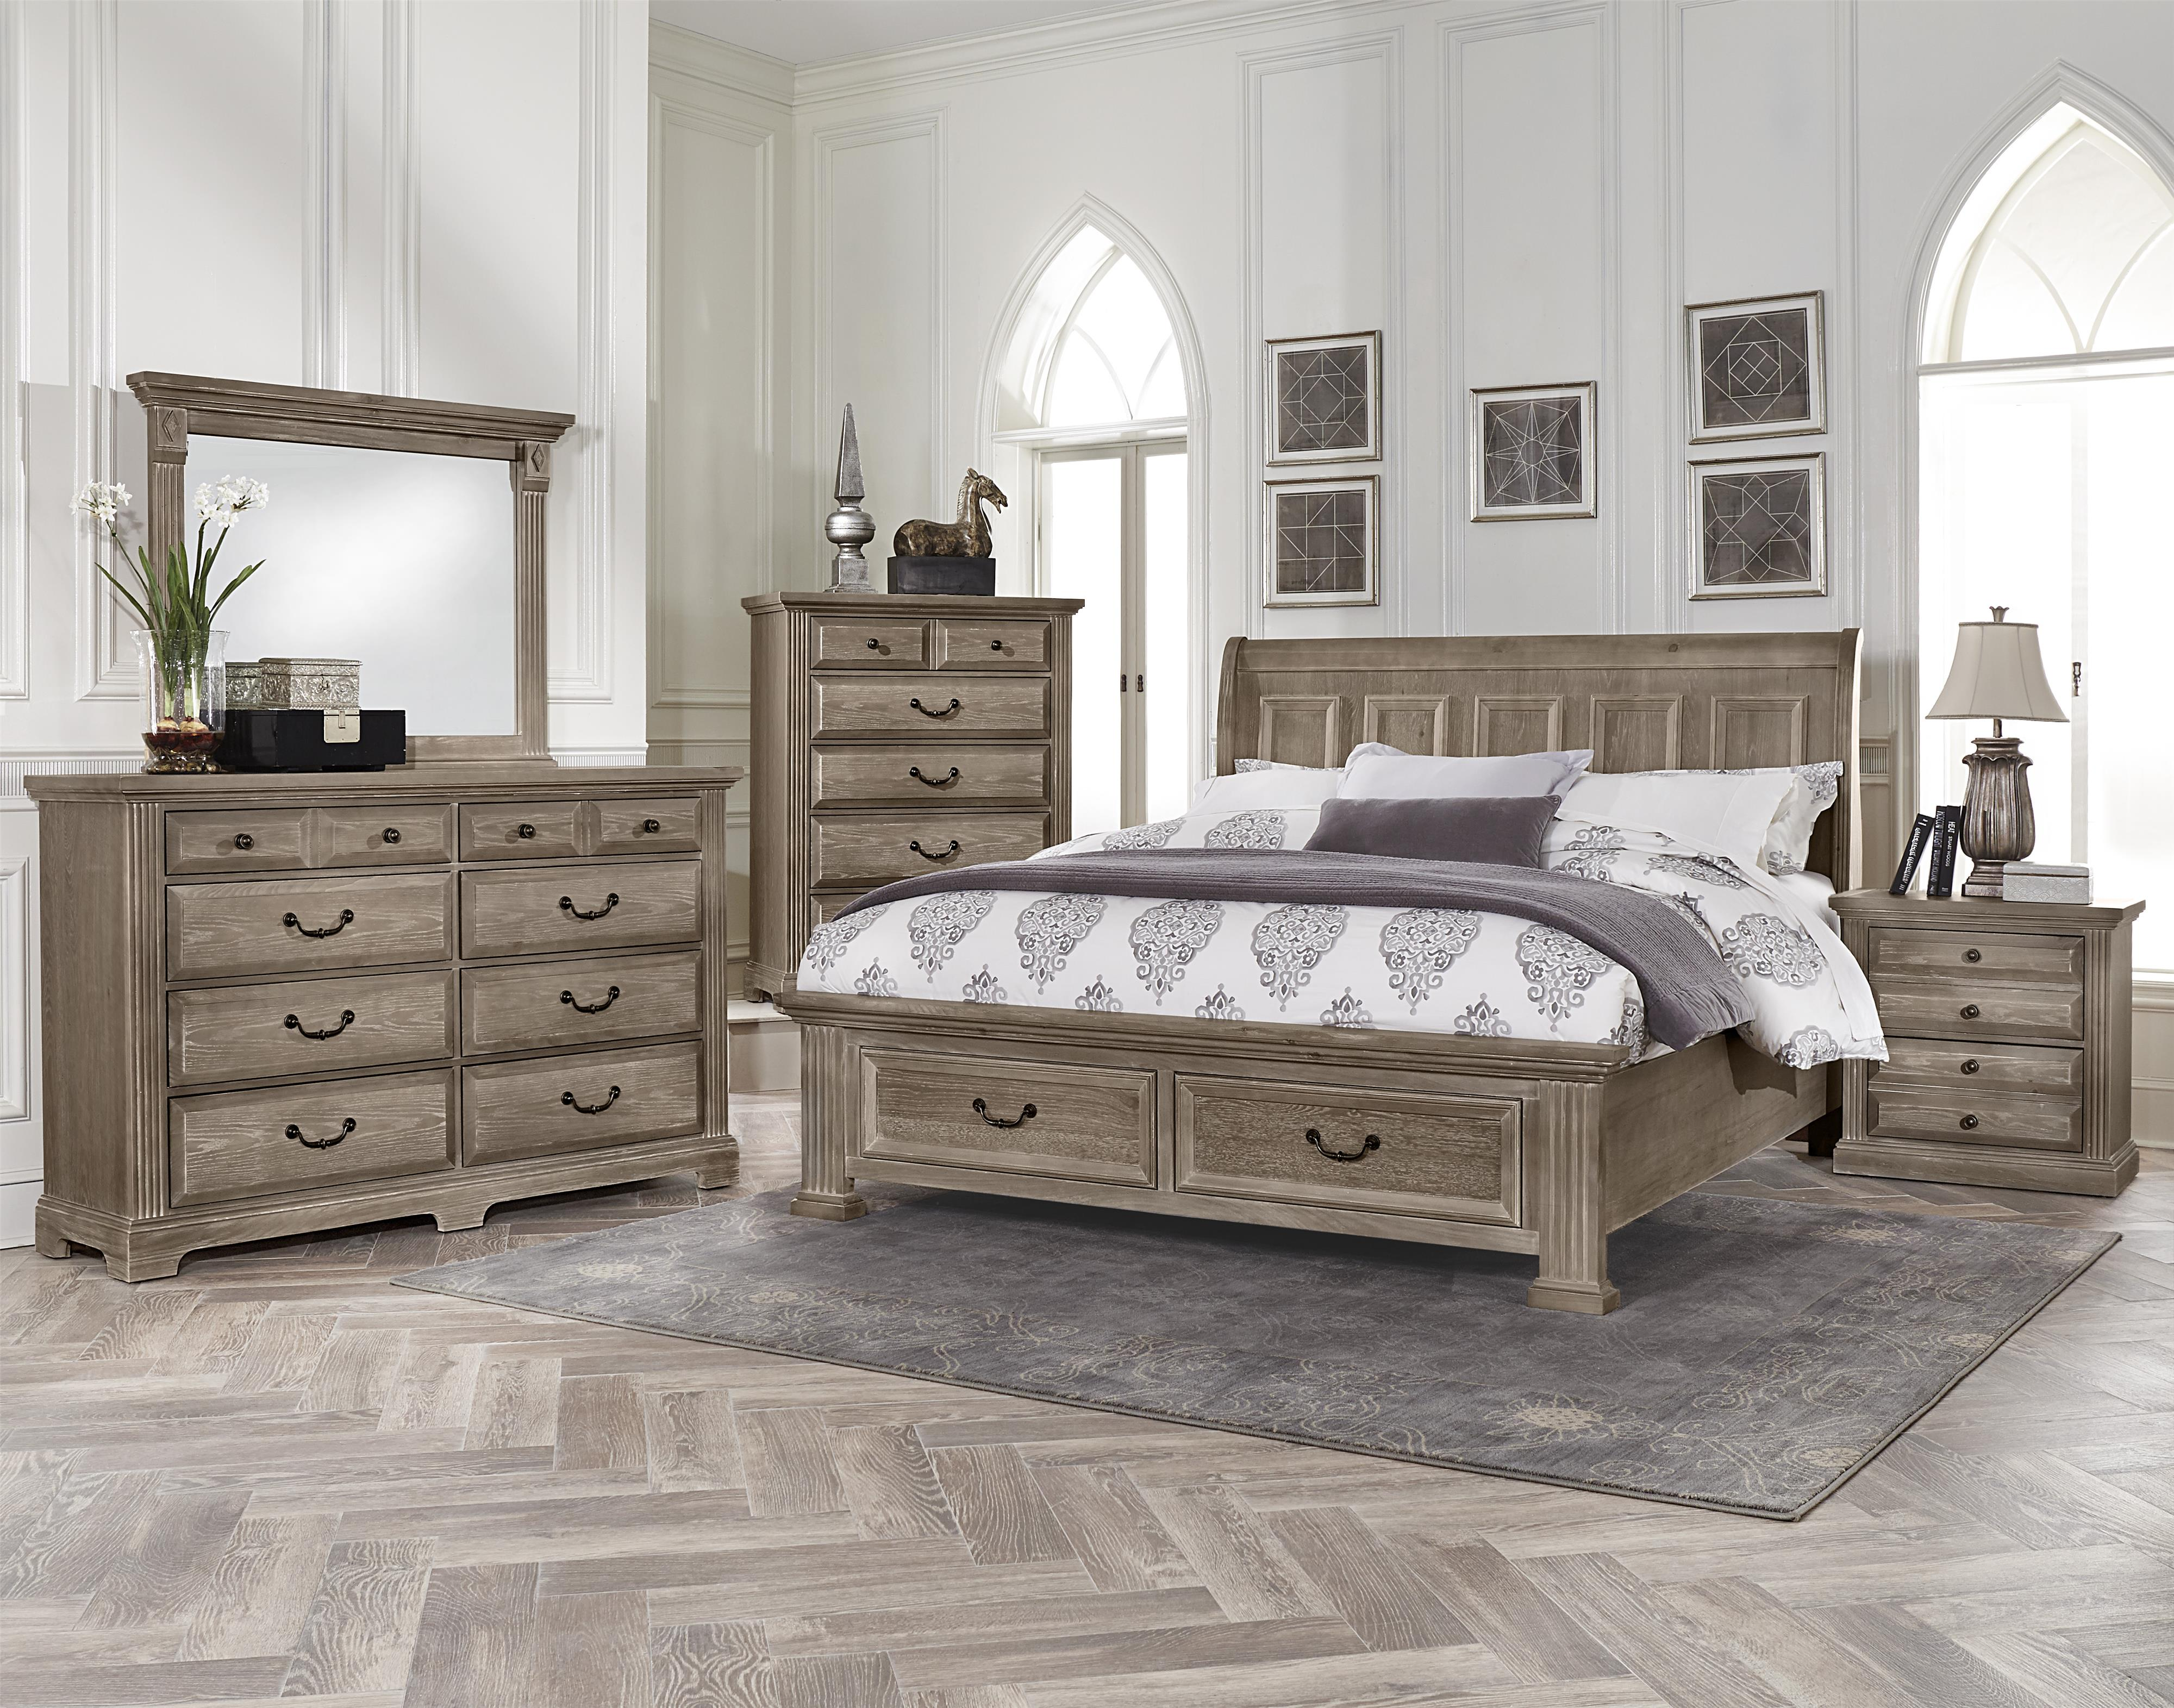 Vaughan Bassett Woodlands King Bedroom Group - Item Number: BB96 K Bedroom Group 3